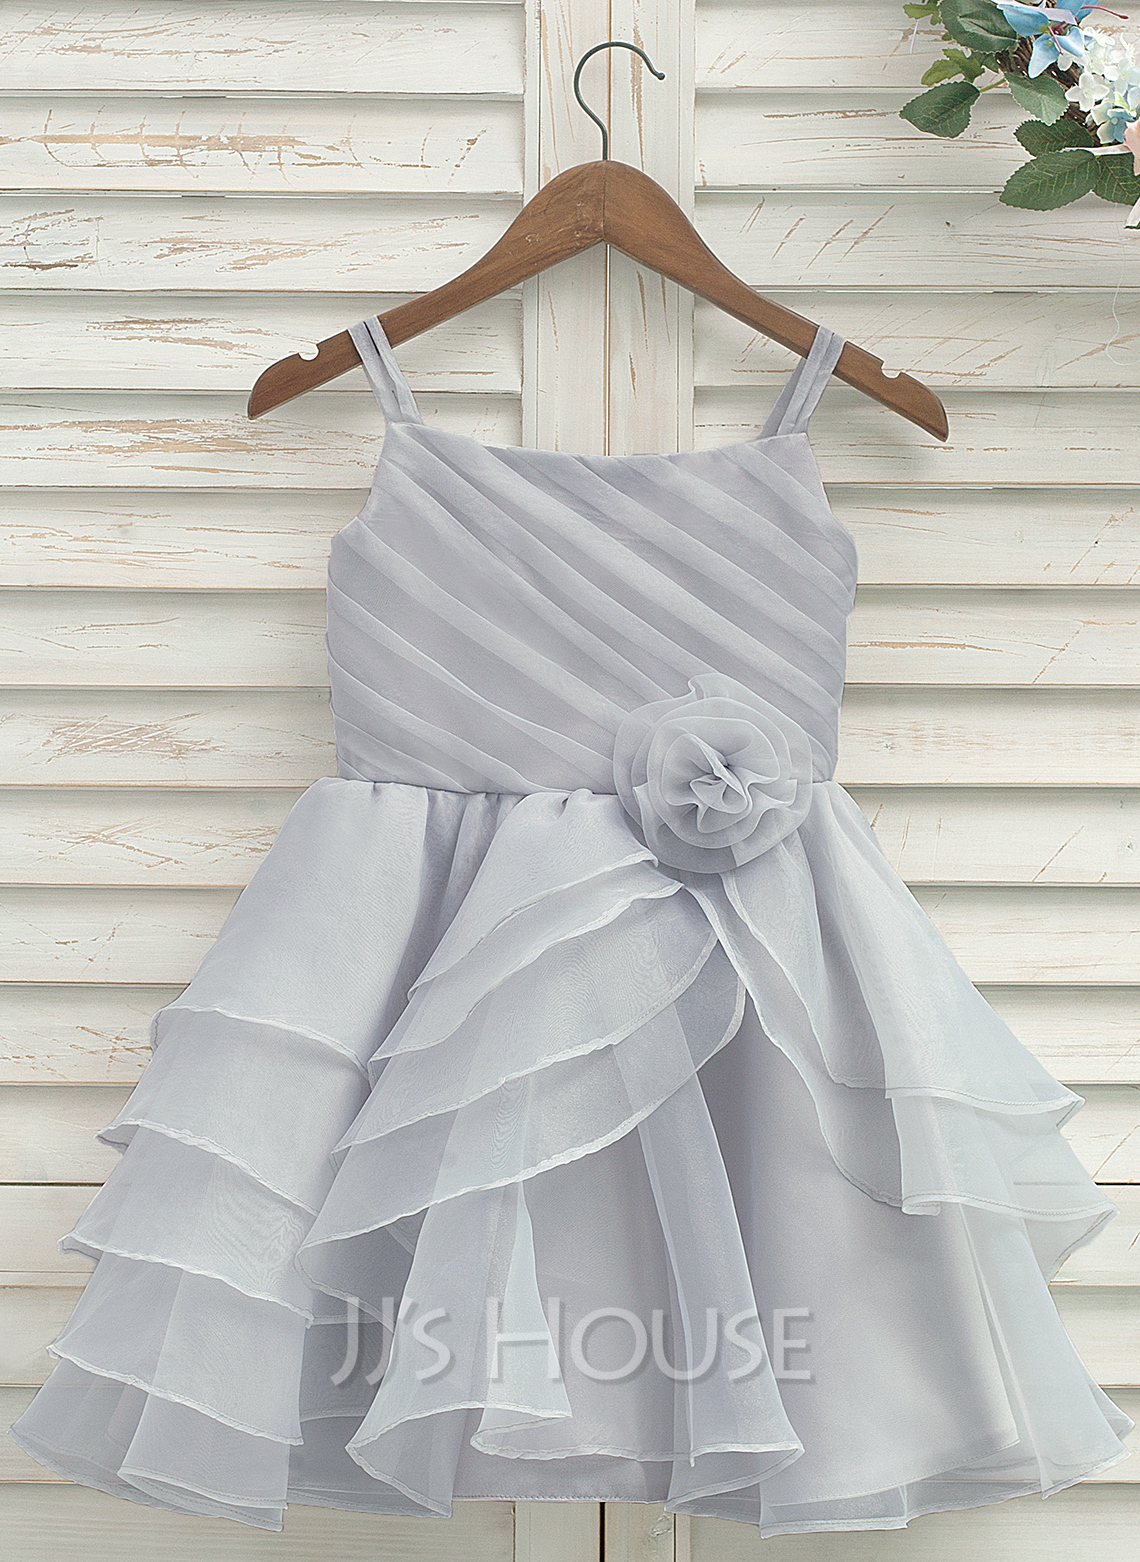 A-Line/Princess Knee-length Flower Girl Dress - Organza/Satin Sleeveless Straps With Pleated